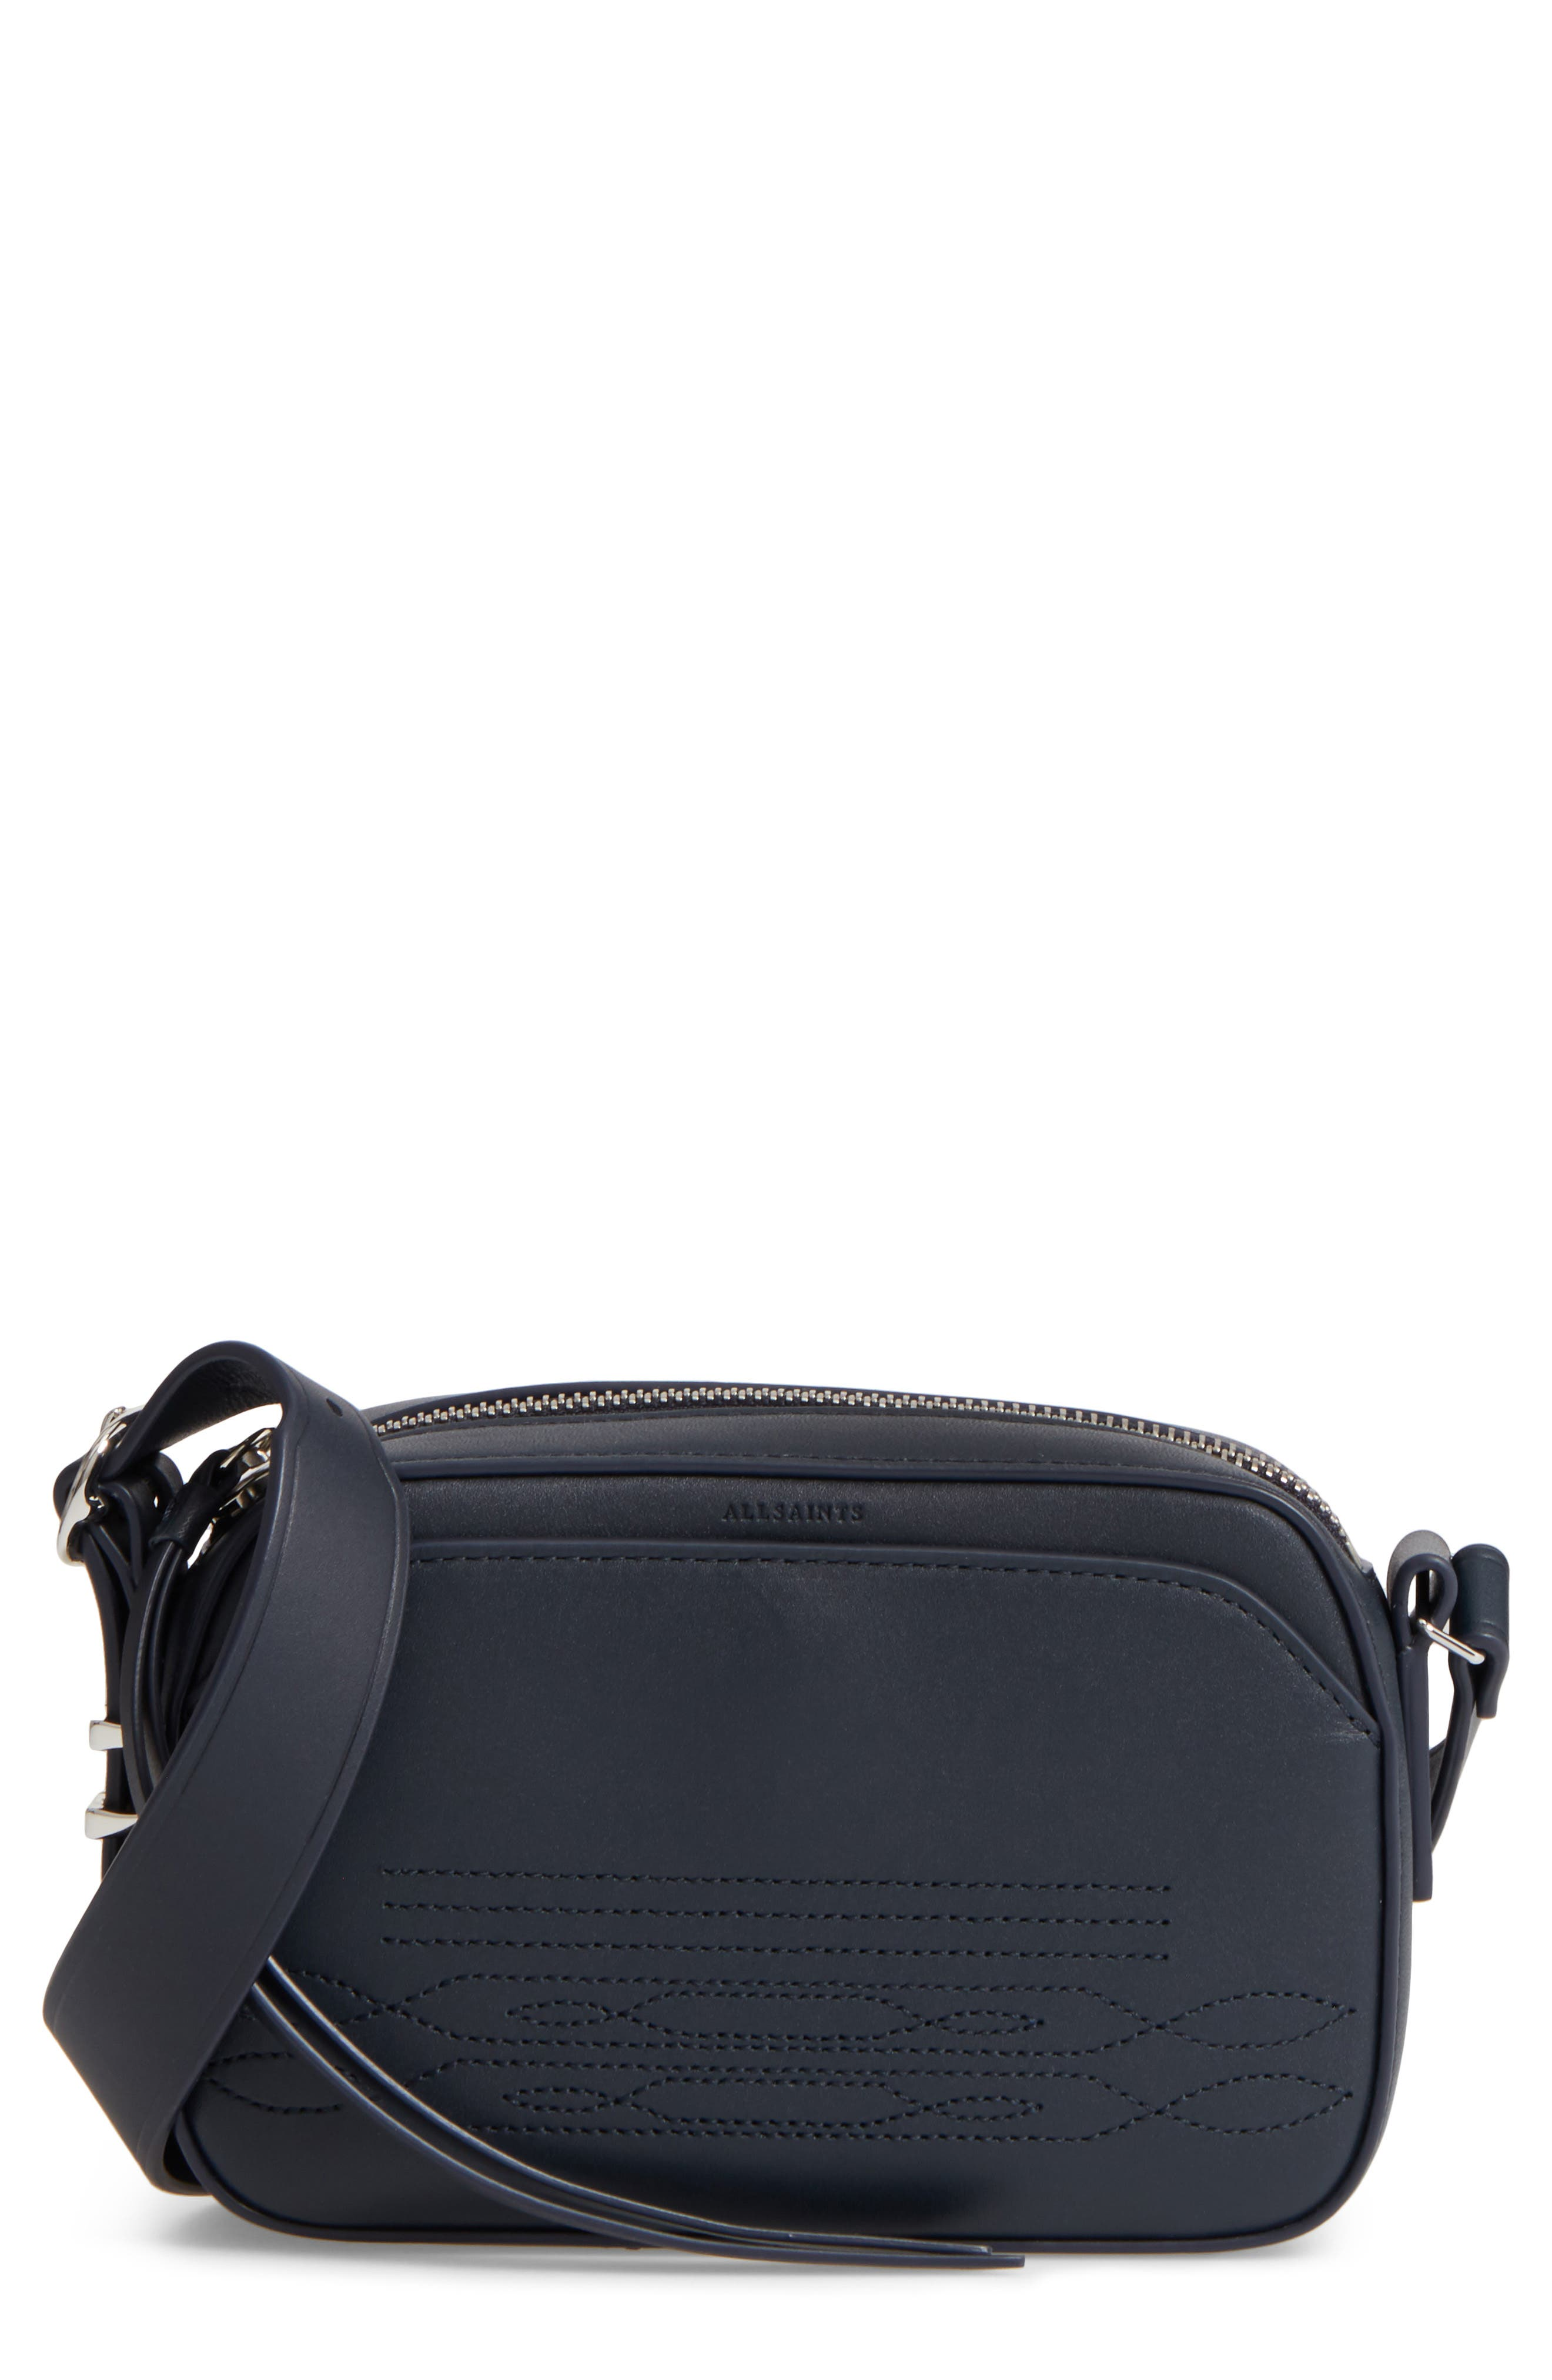 ALLSAINTS Small Cooper Calfskin Leather Shoulder Bag